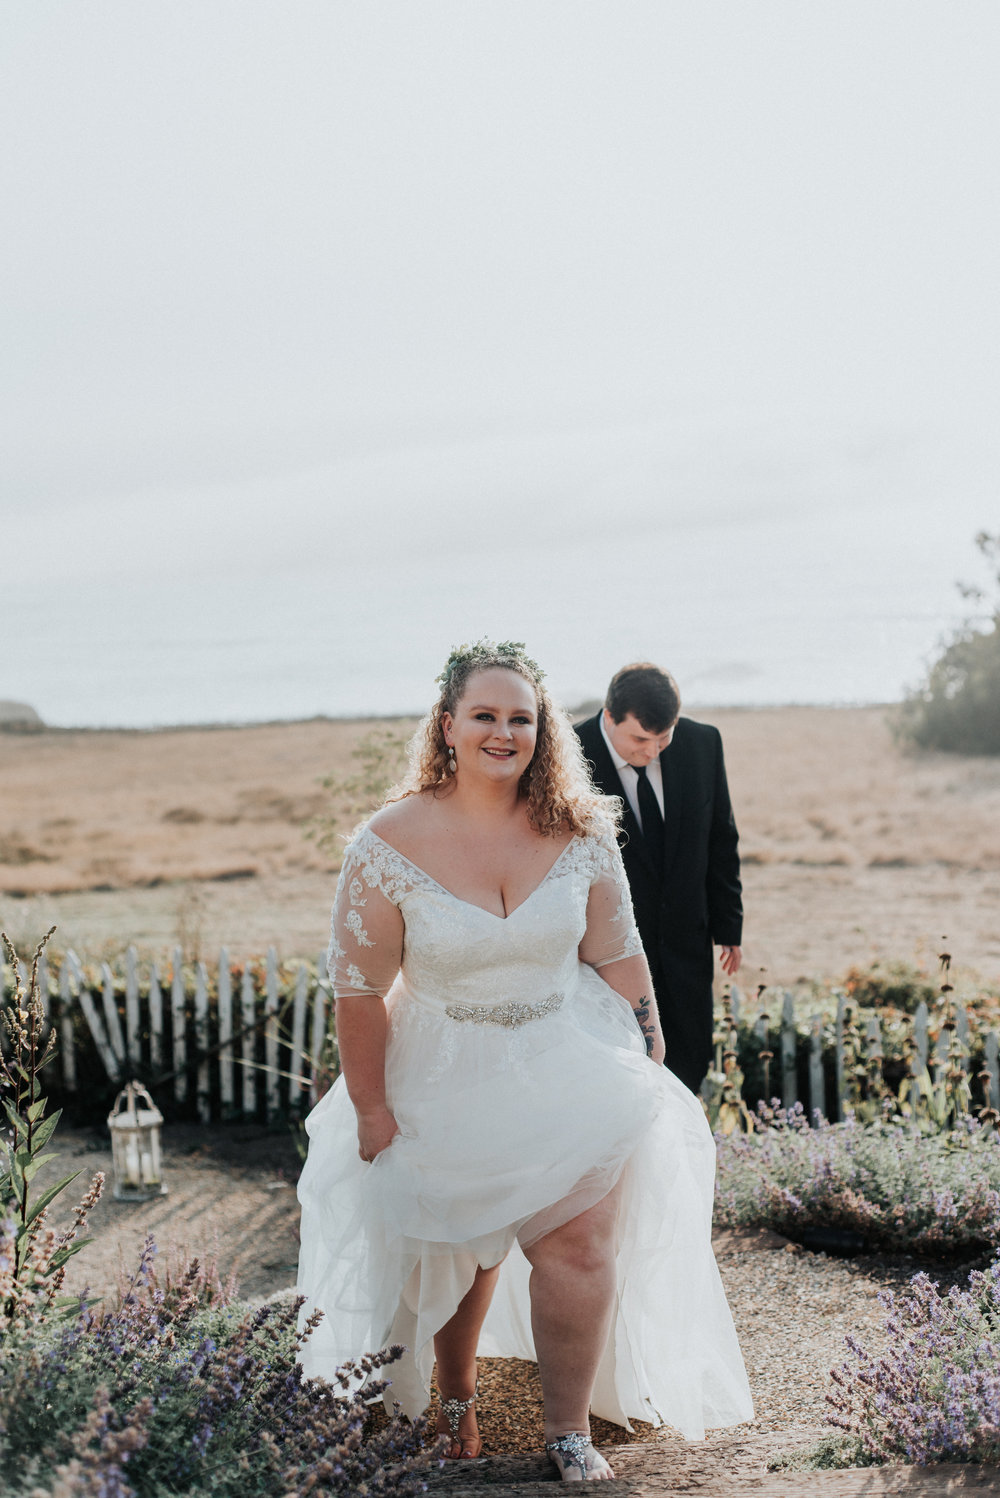 westport california +-switzer farm +- intimate + wedding + photographer.jpg